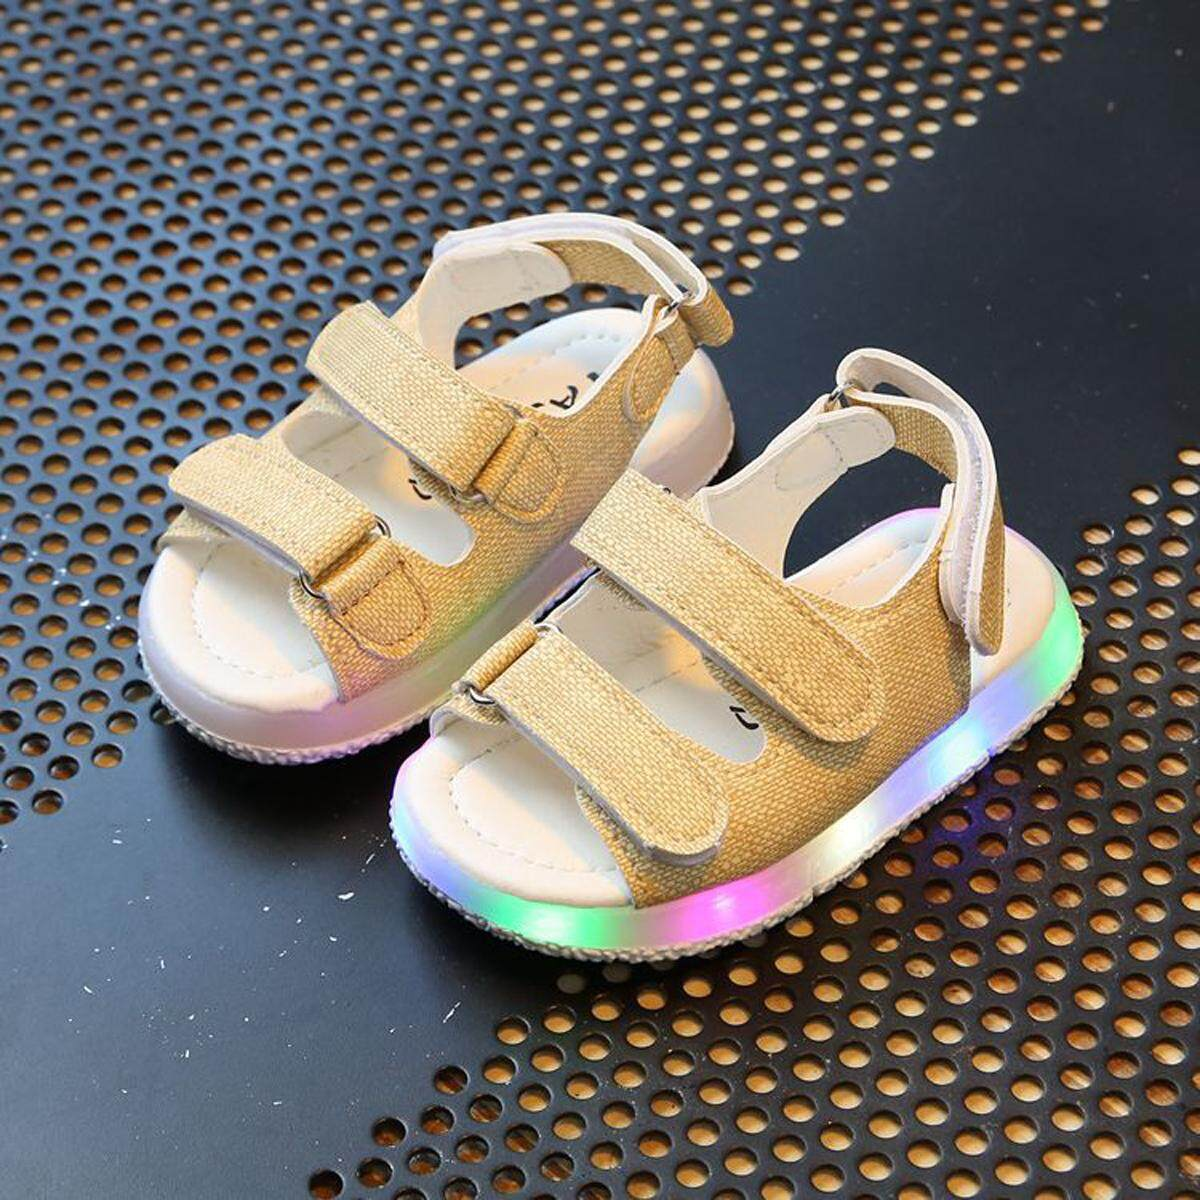 New Fashion Children Sandals Boys Girls Sport Sandals Summer Light LED Velcro Beach Sandals Kids Anti-slip Shoes